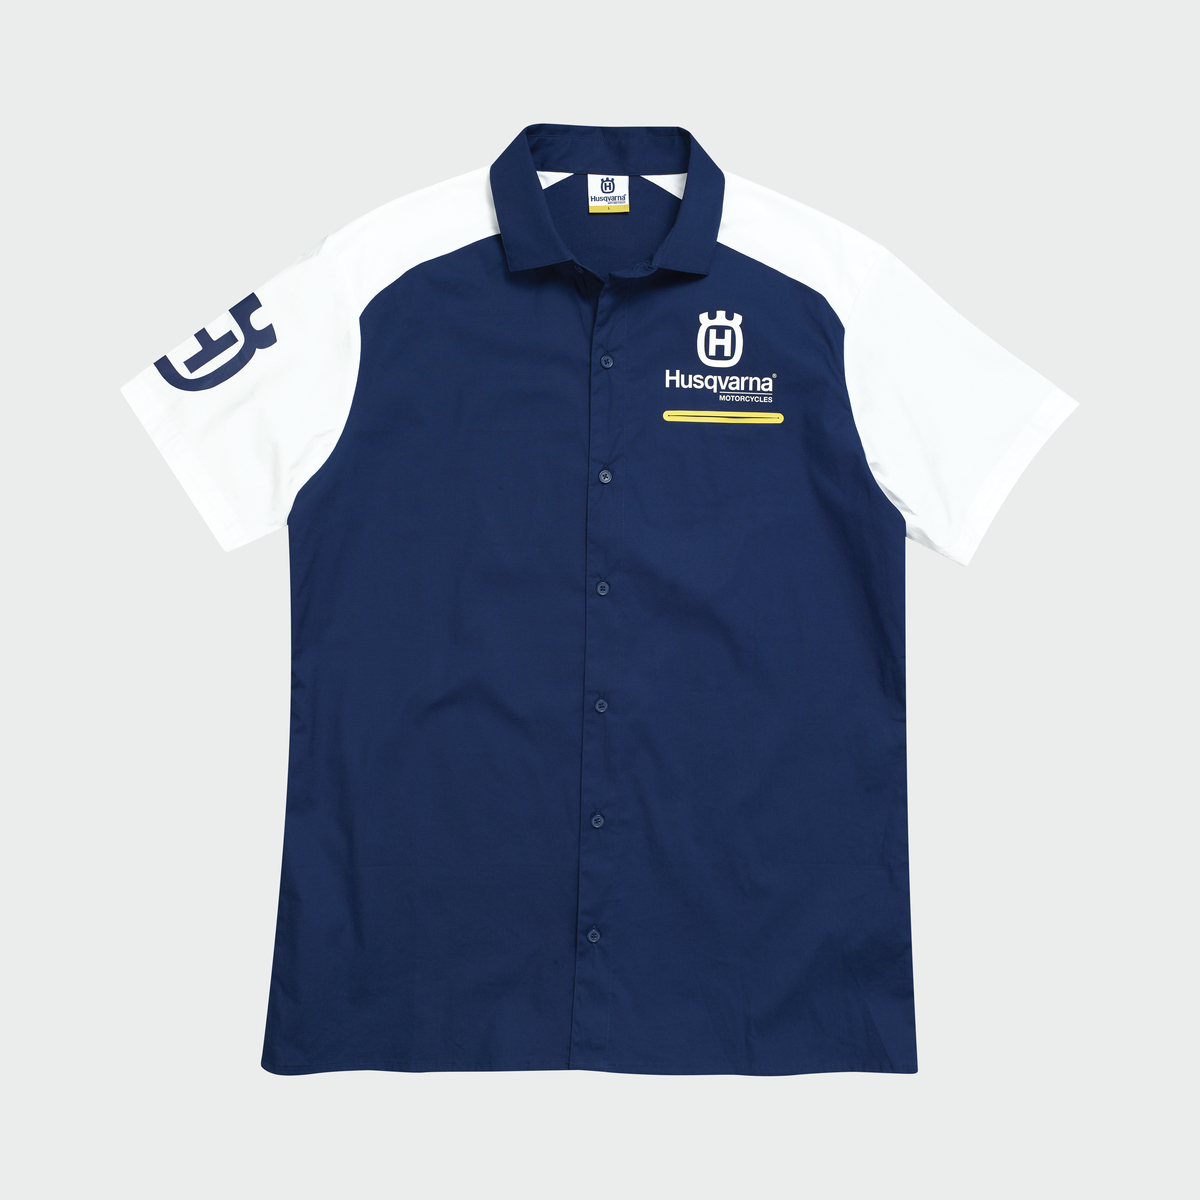 Husqvarna Mens Replica Team Shirt